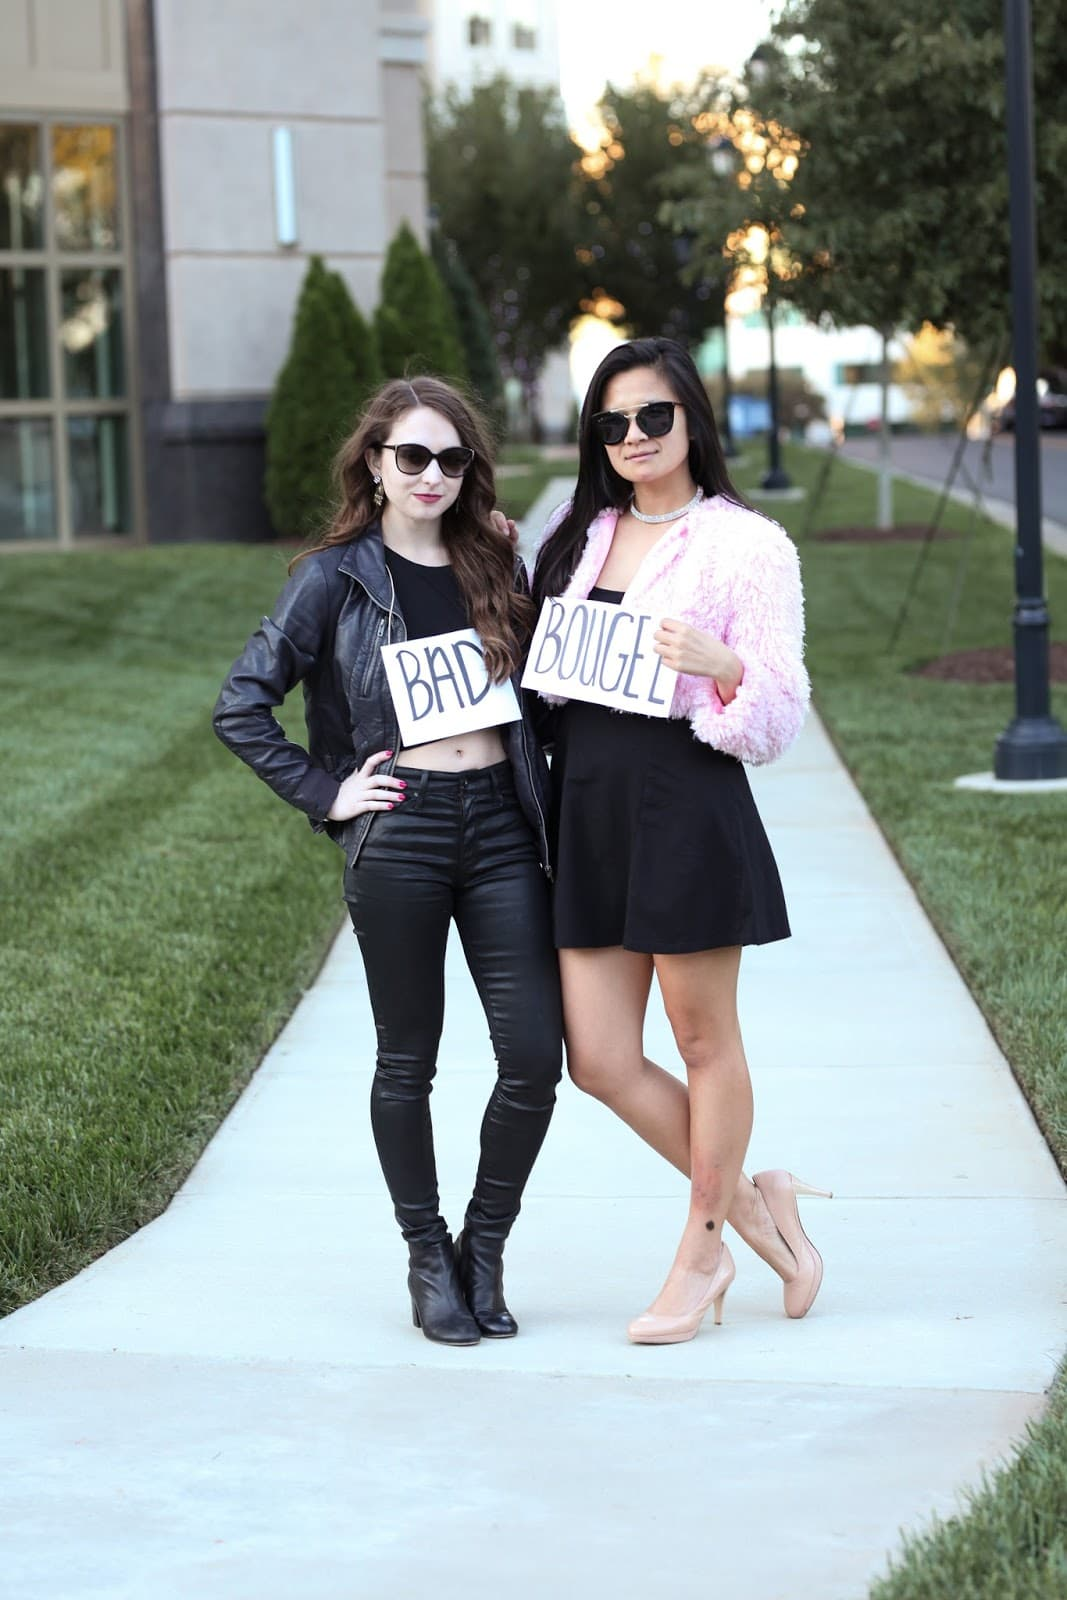 Bad + Bougee Friend Halloween Costume - Check out these 40 cute and creative Halloween costume ideas for women, couples, families, and friends! #halloween #halloweencostumes #halloweencostumeideas